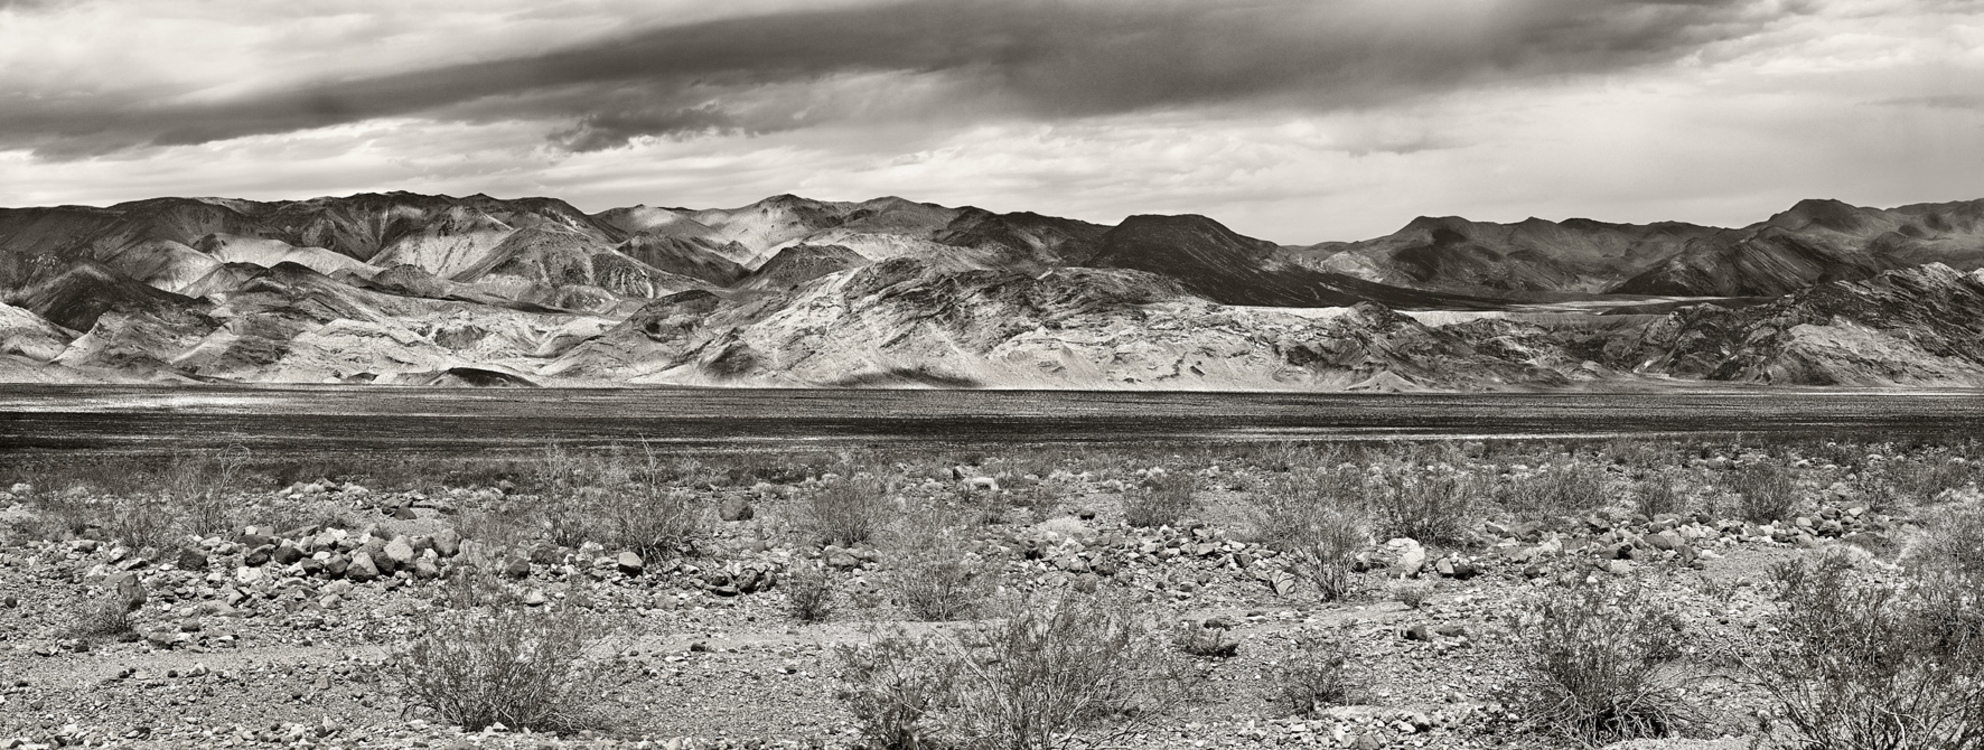 Web_big_preview_deathvalley_07__0094_final